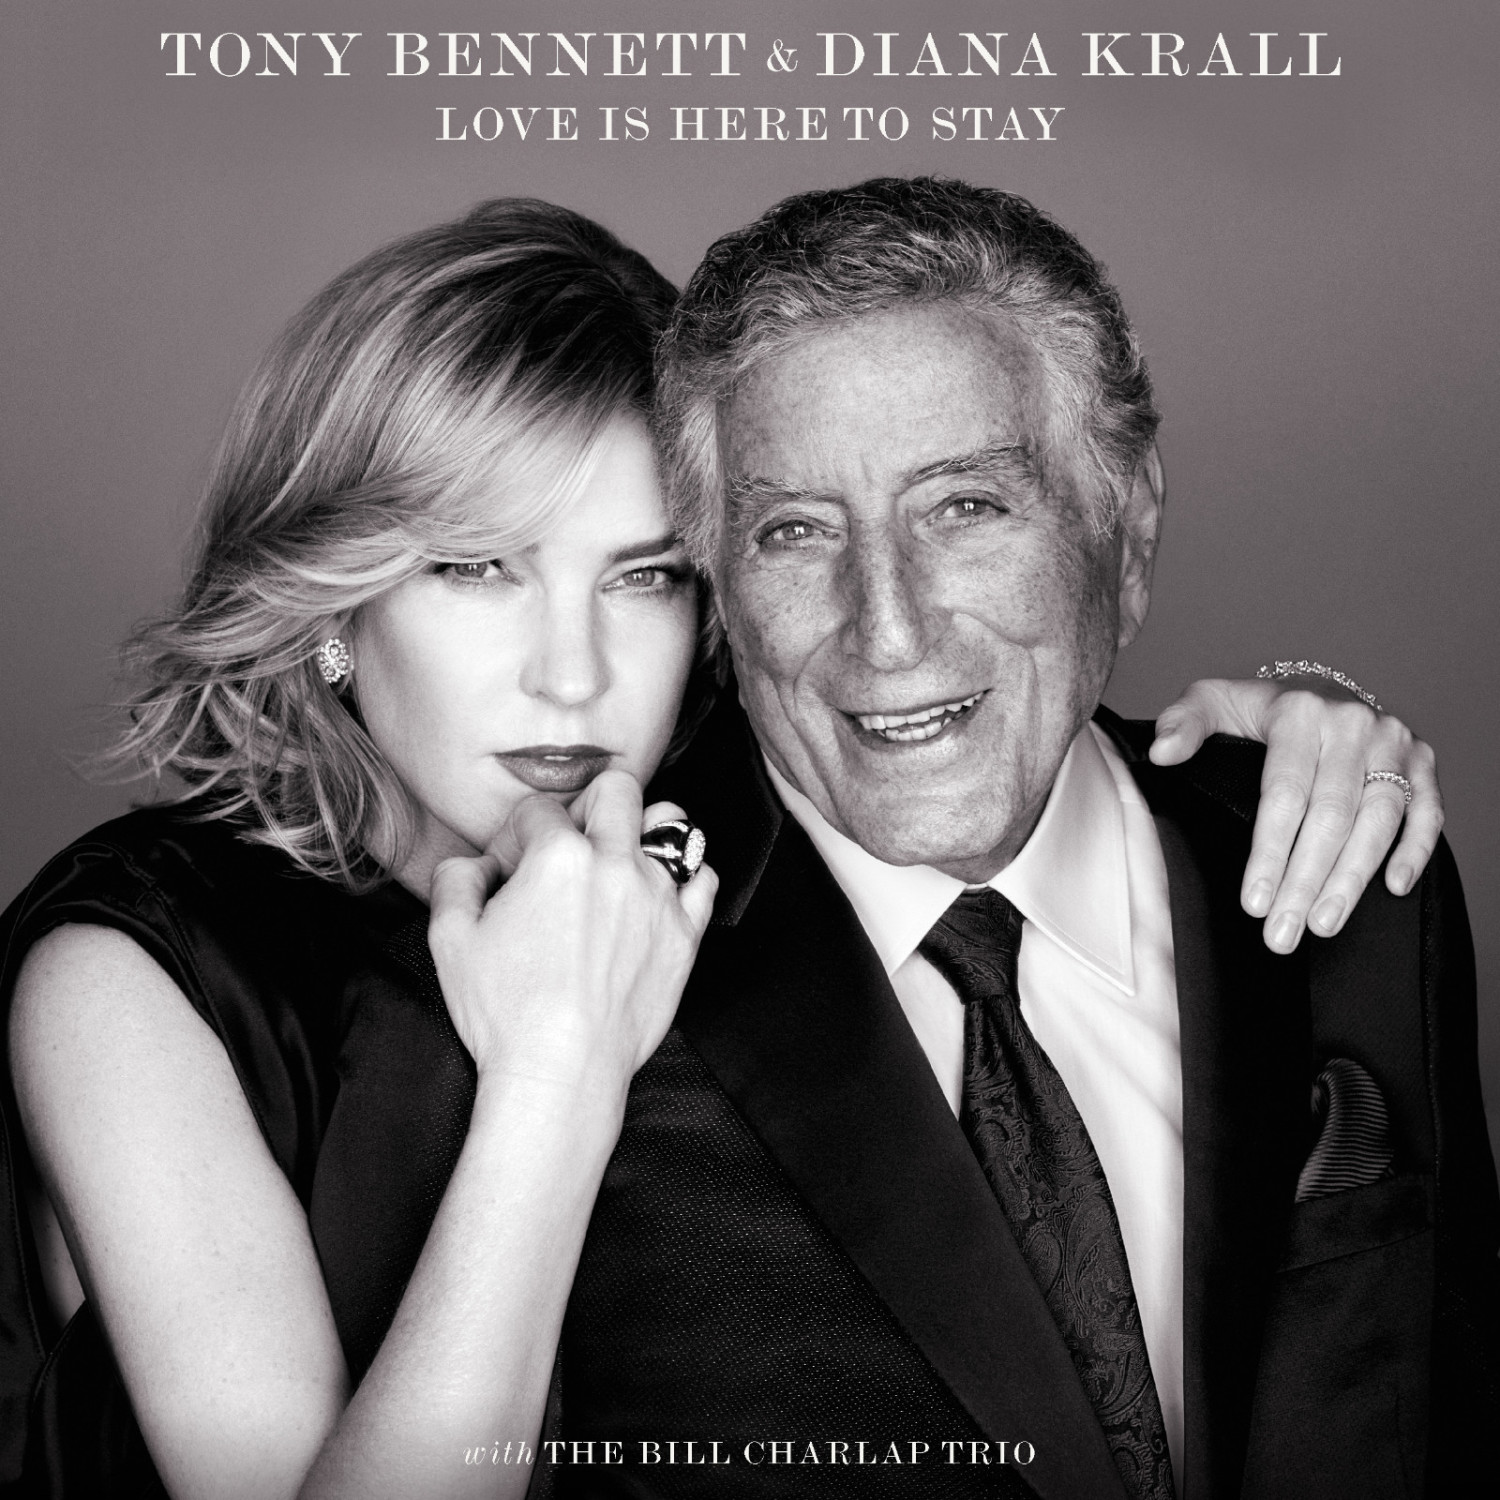 Tony Bennett & Diana Krall - Love is here to stay (CD)